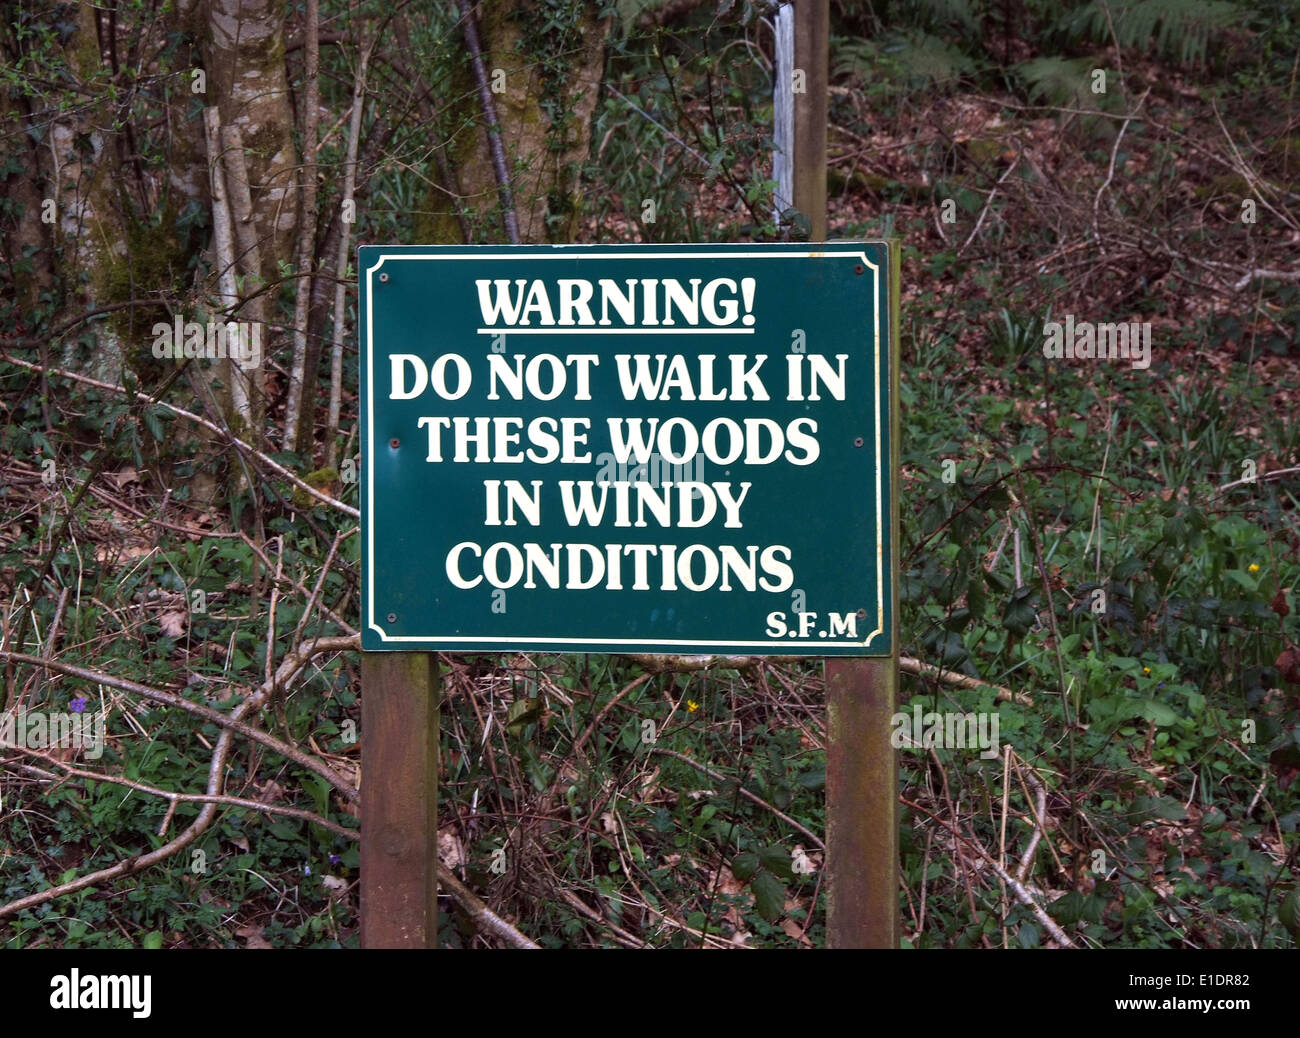 sign in woods warning about hazards in windy conditions - Stock Image